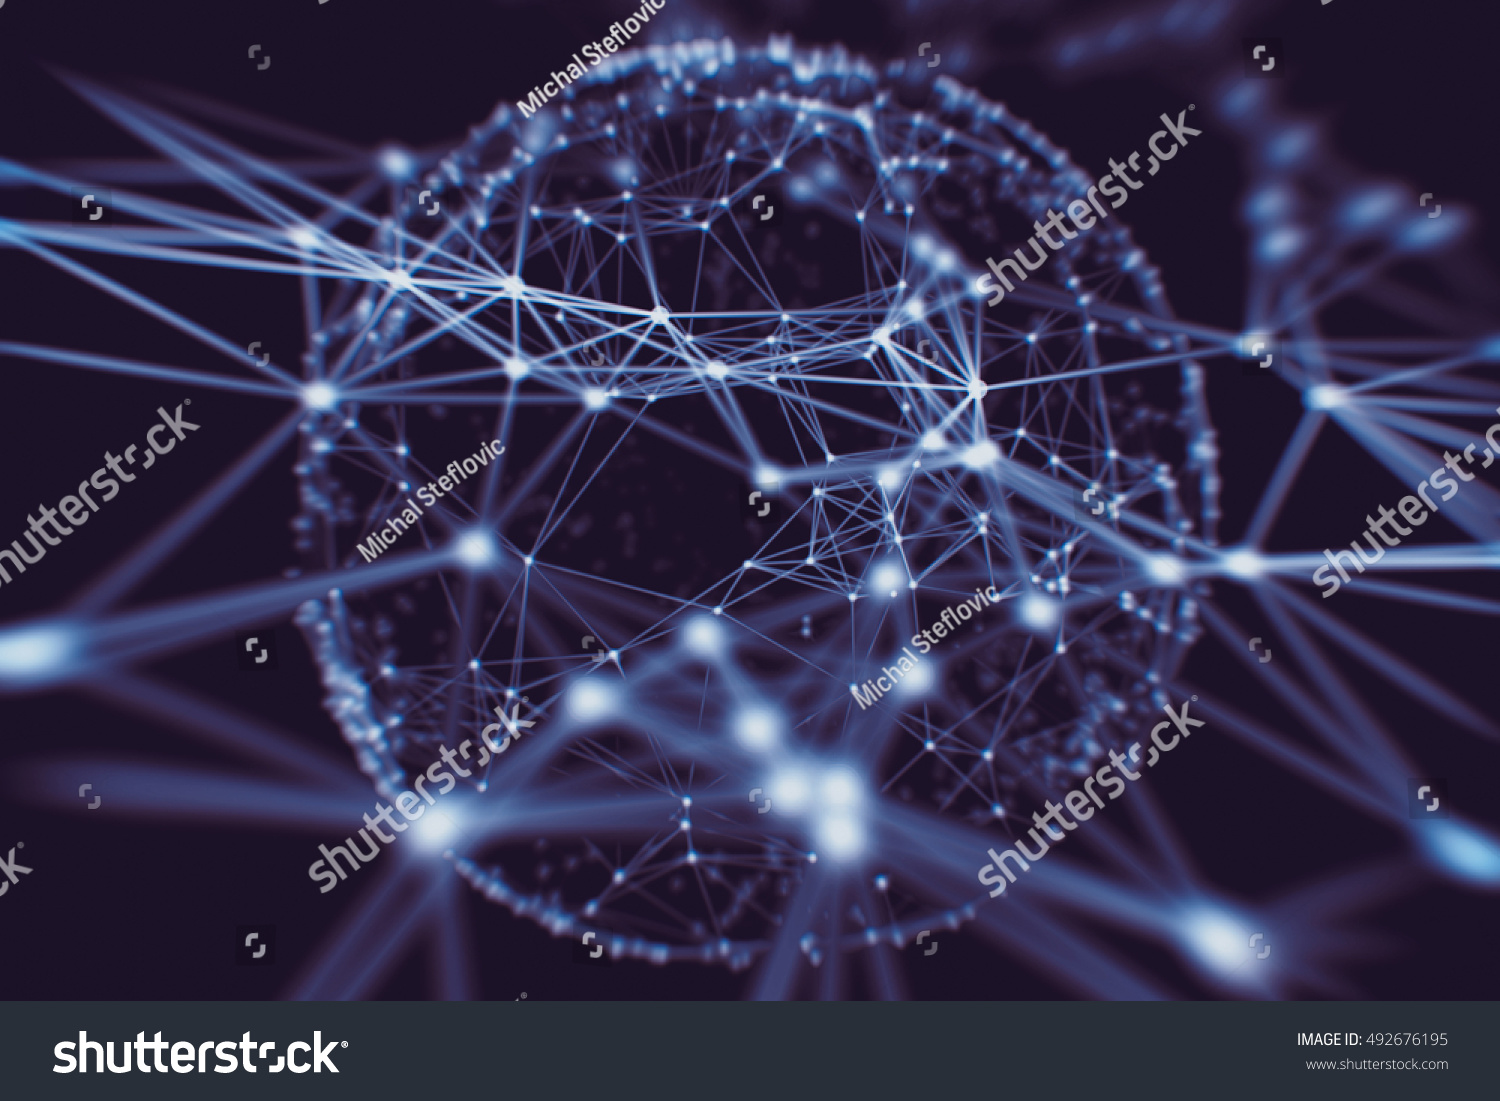 a description of neural network technology Ann takes data samples rather than entire data sets to arrive at solutions, which saves both time and money anns are considered fairly simple mathematical models to enhance existing data analysis technologies anns have three layers that are interconnected the first layer consists of input neurons those neurons.